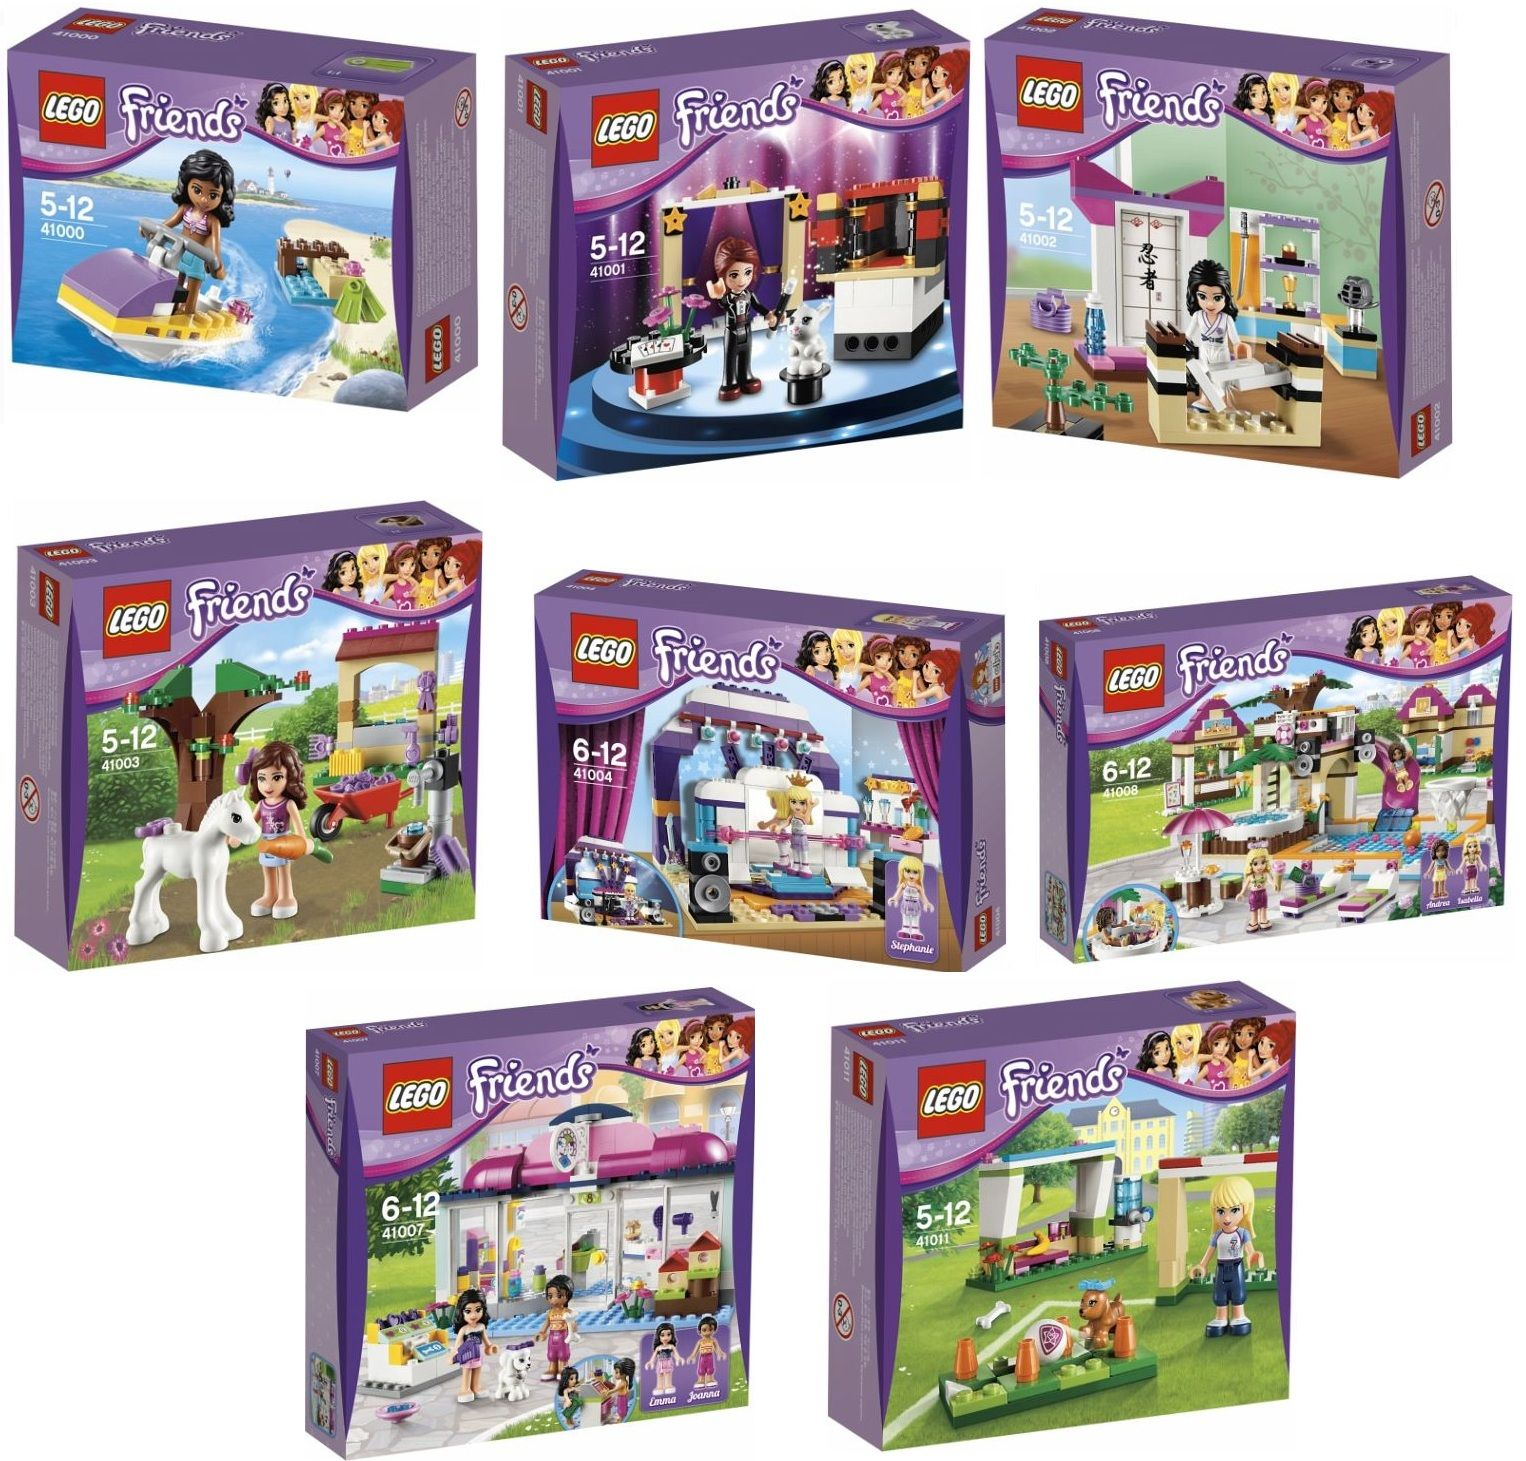 Lego Friends Christmas Sets.Just Any Lego Friend My Birthday List Christmas Gifts